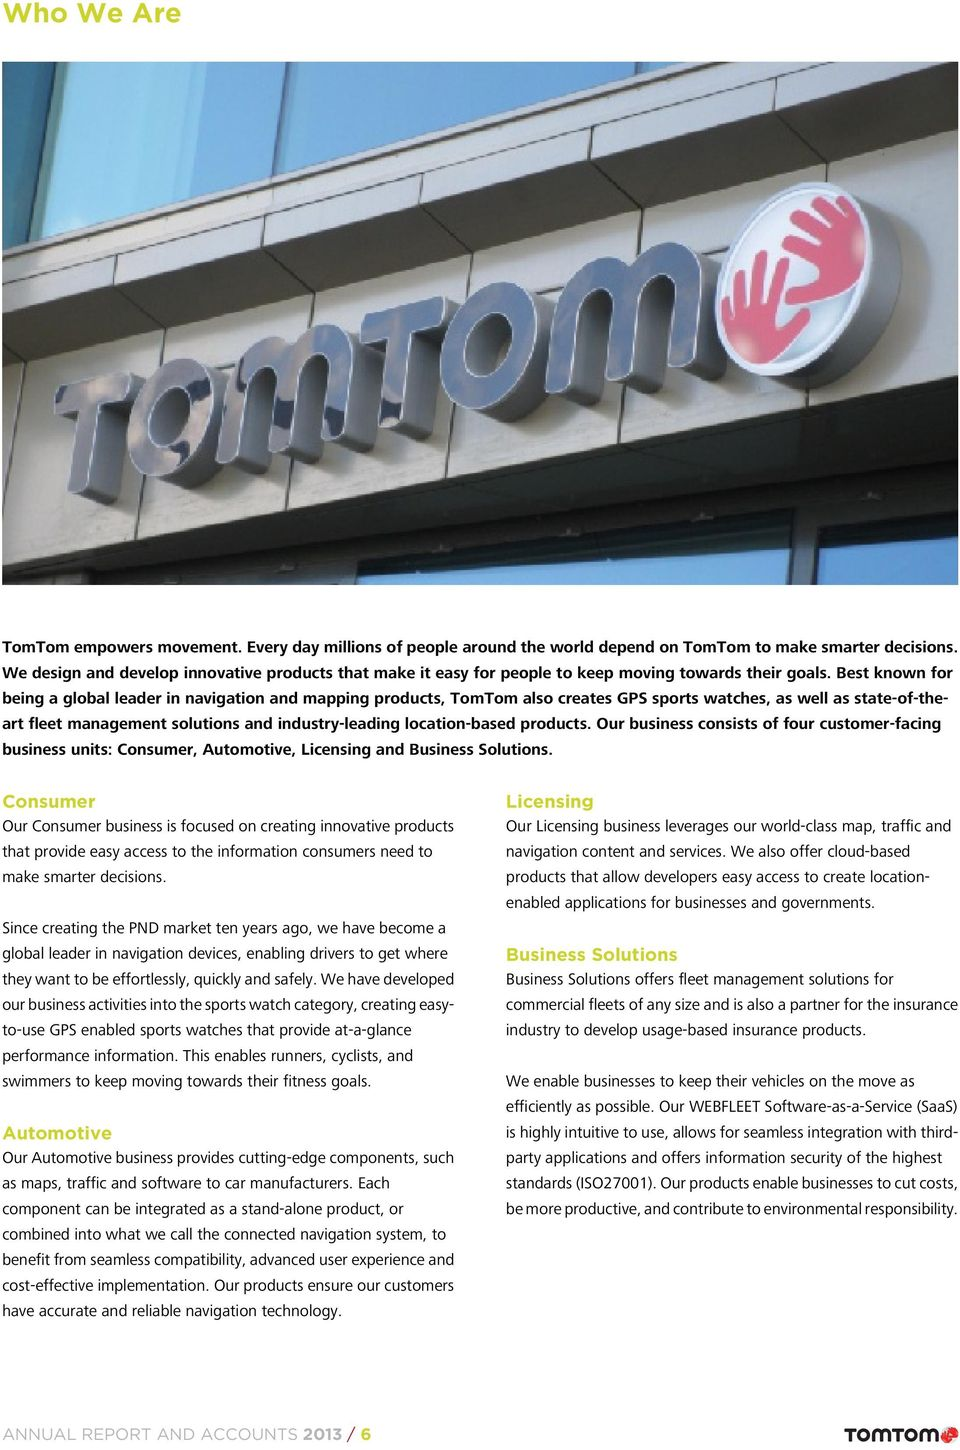 Best known for being a global leader in navigation and mapping products, TomTom also creates GPS sports watches, as well as state-of-theart fleet management solutions and industry-leading